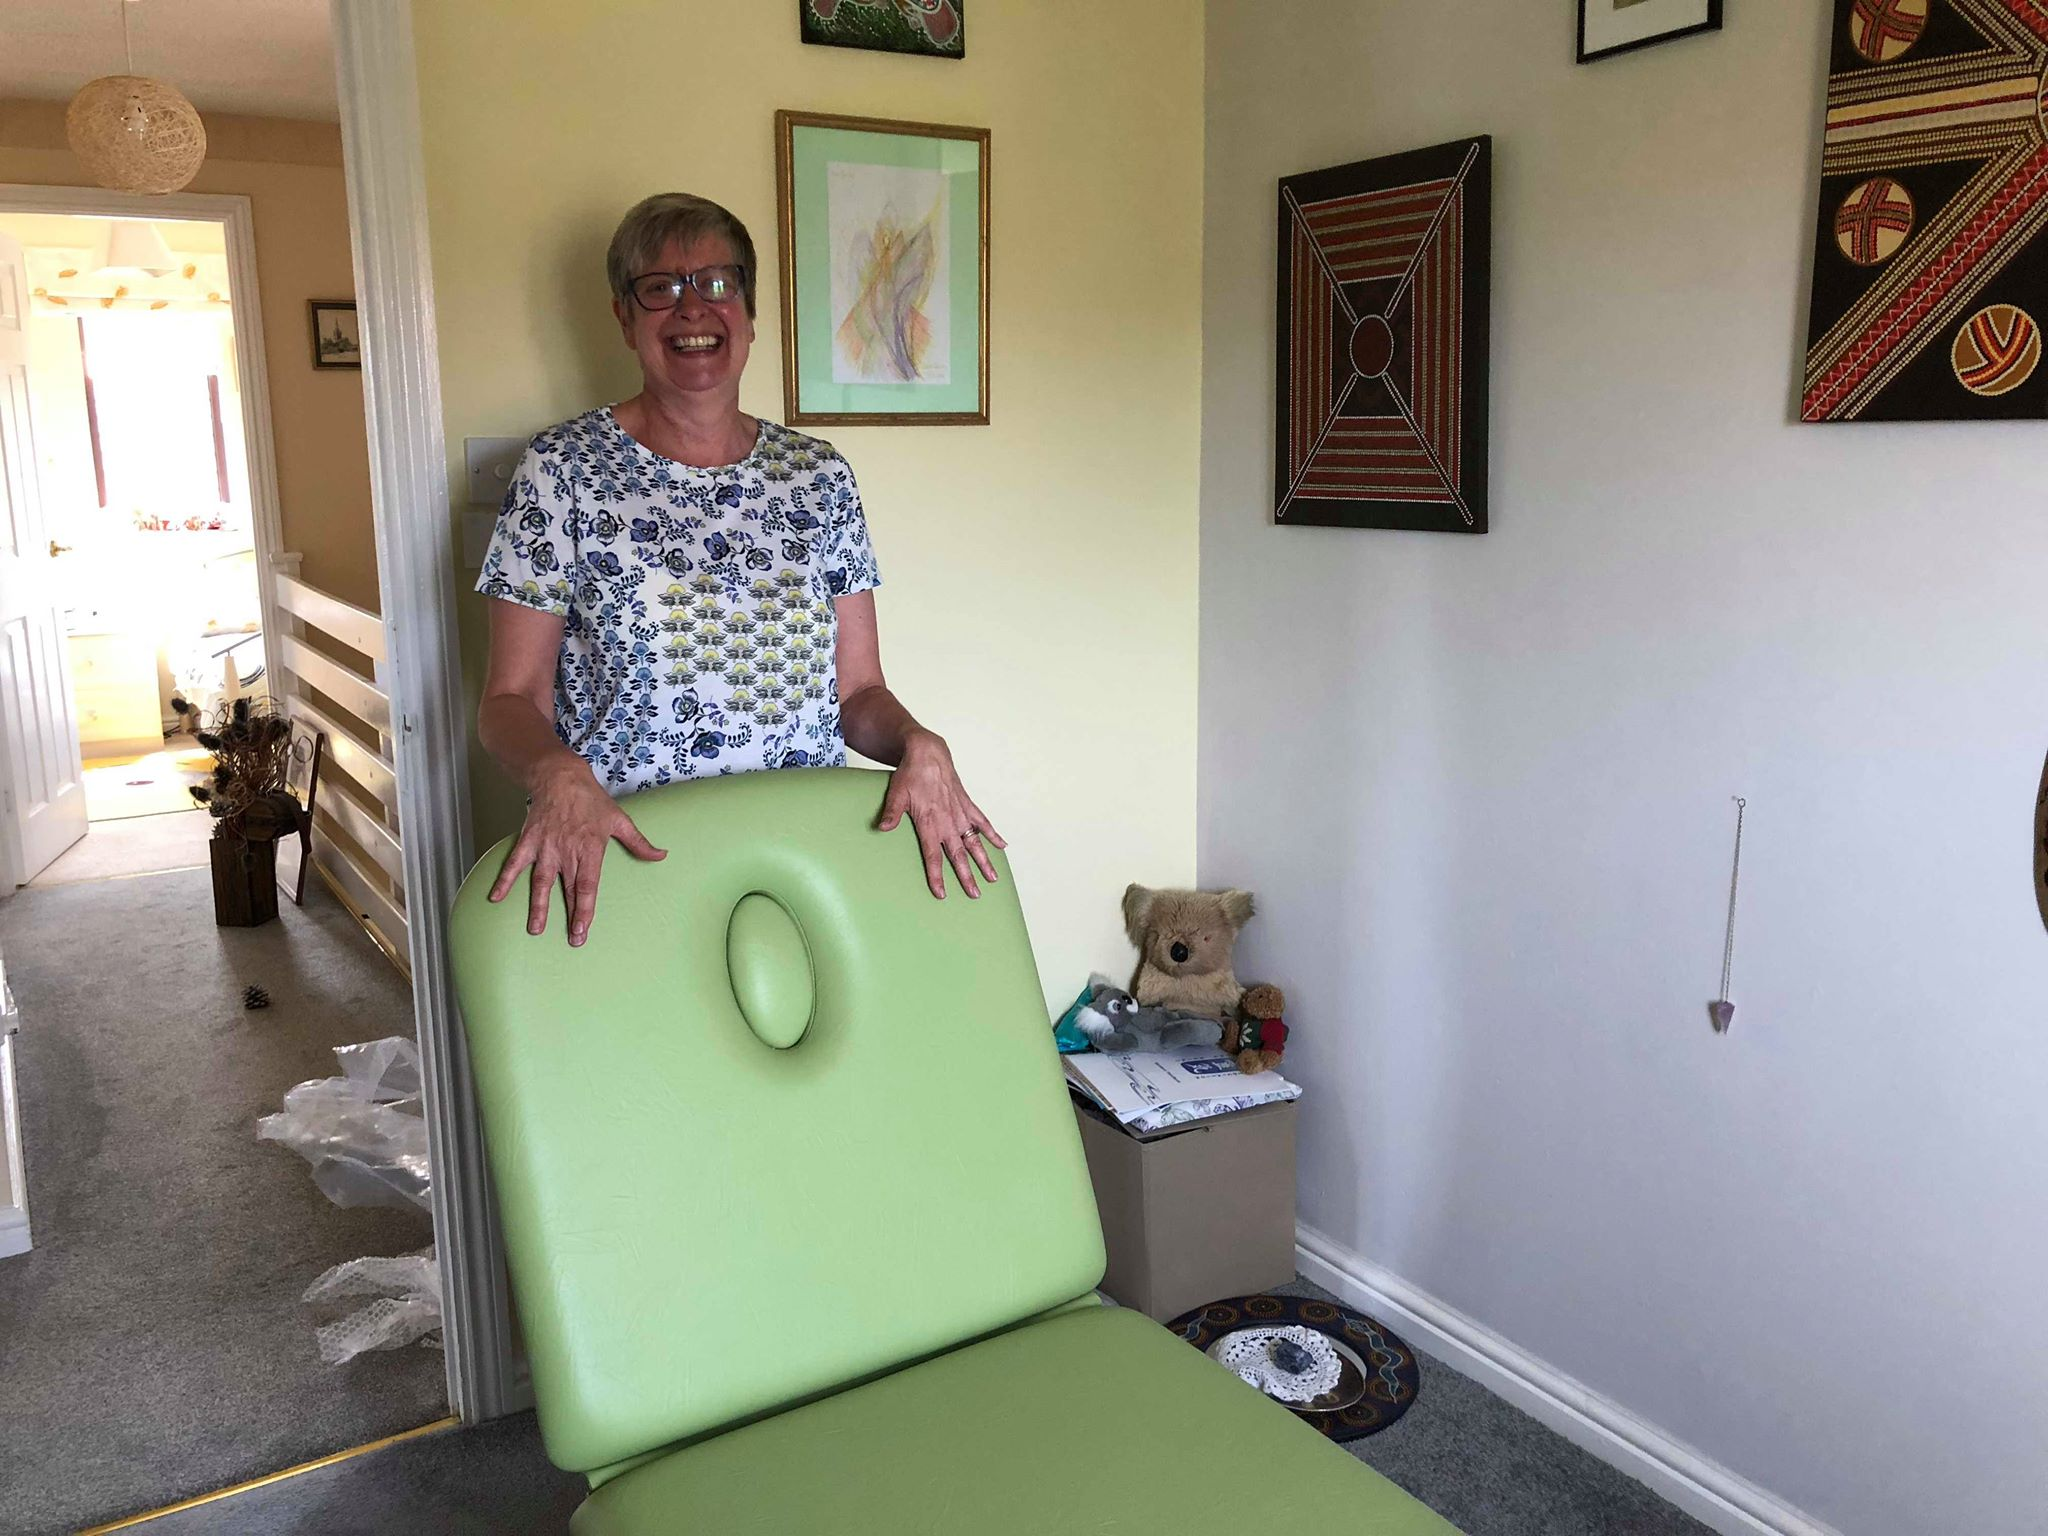 Julie, Needham Market, with her new SEERS Couch